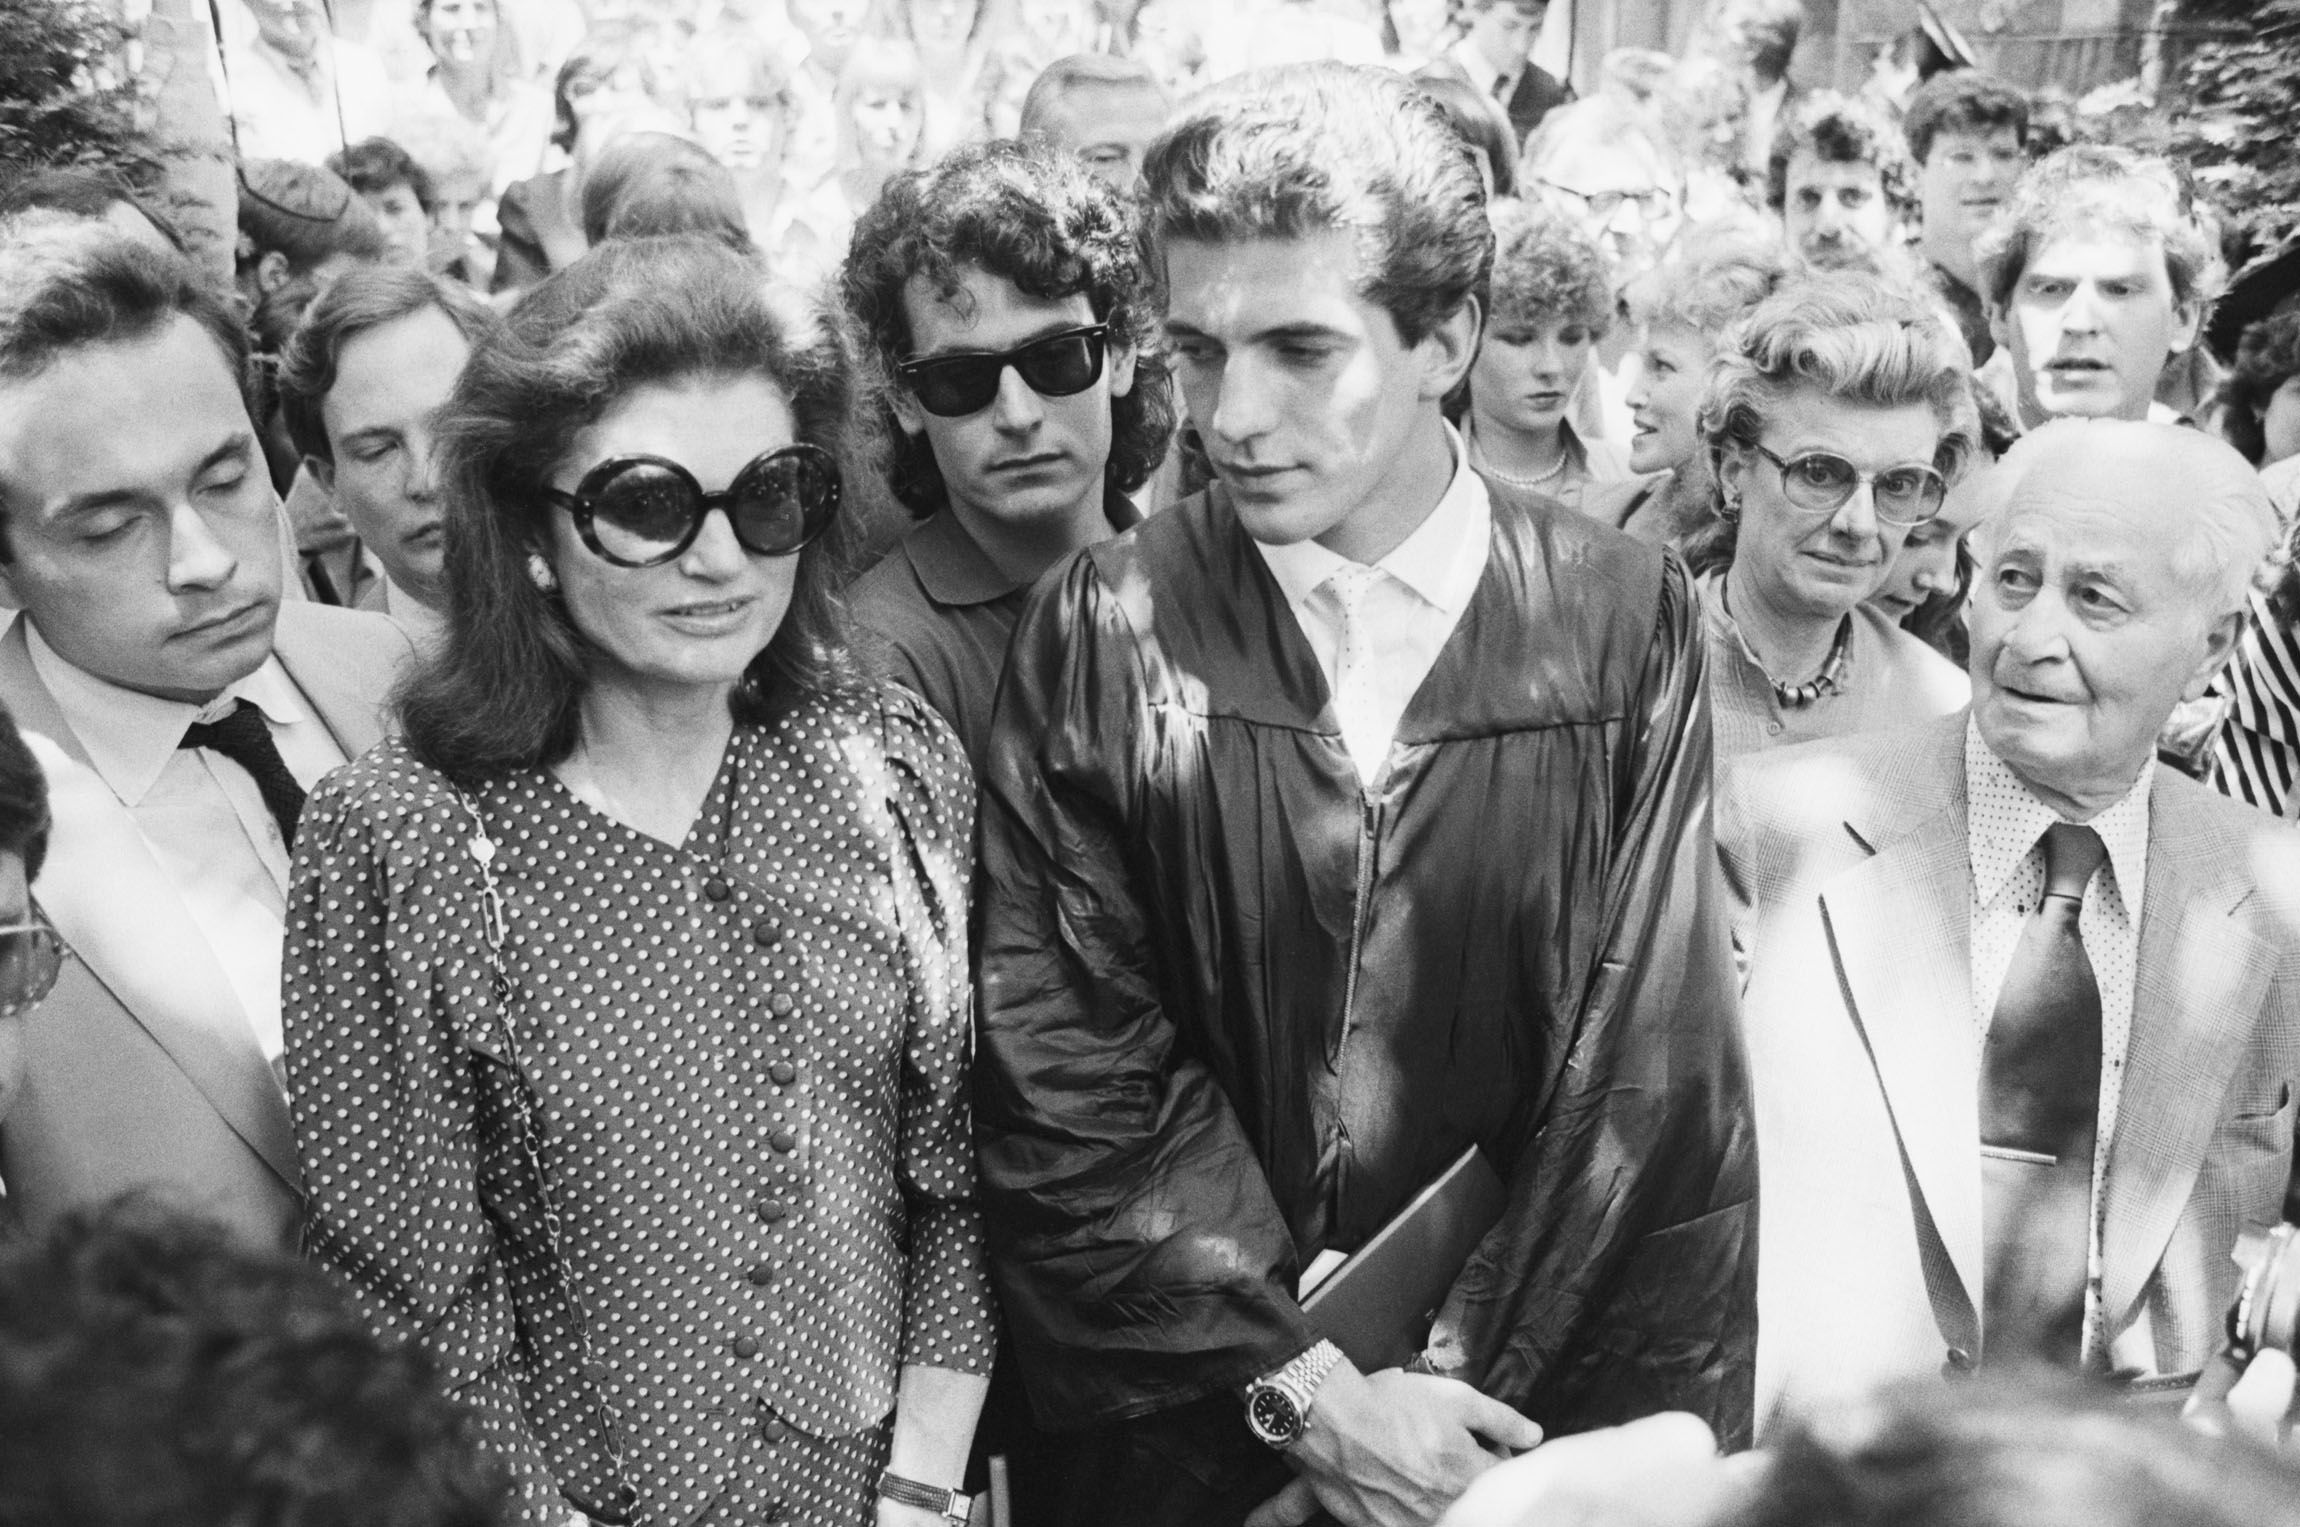 John F. Kennedy Jr. looks at his mother Jacqueline Kennedy Onassis as they stand at his graduation ceremony at Brown University, where John received a Bachelors of Arts in History on June 6, 1983.